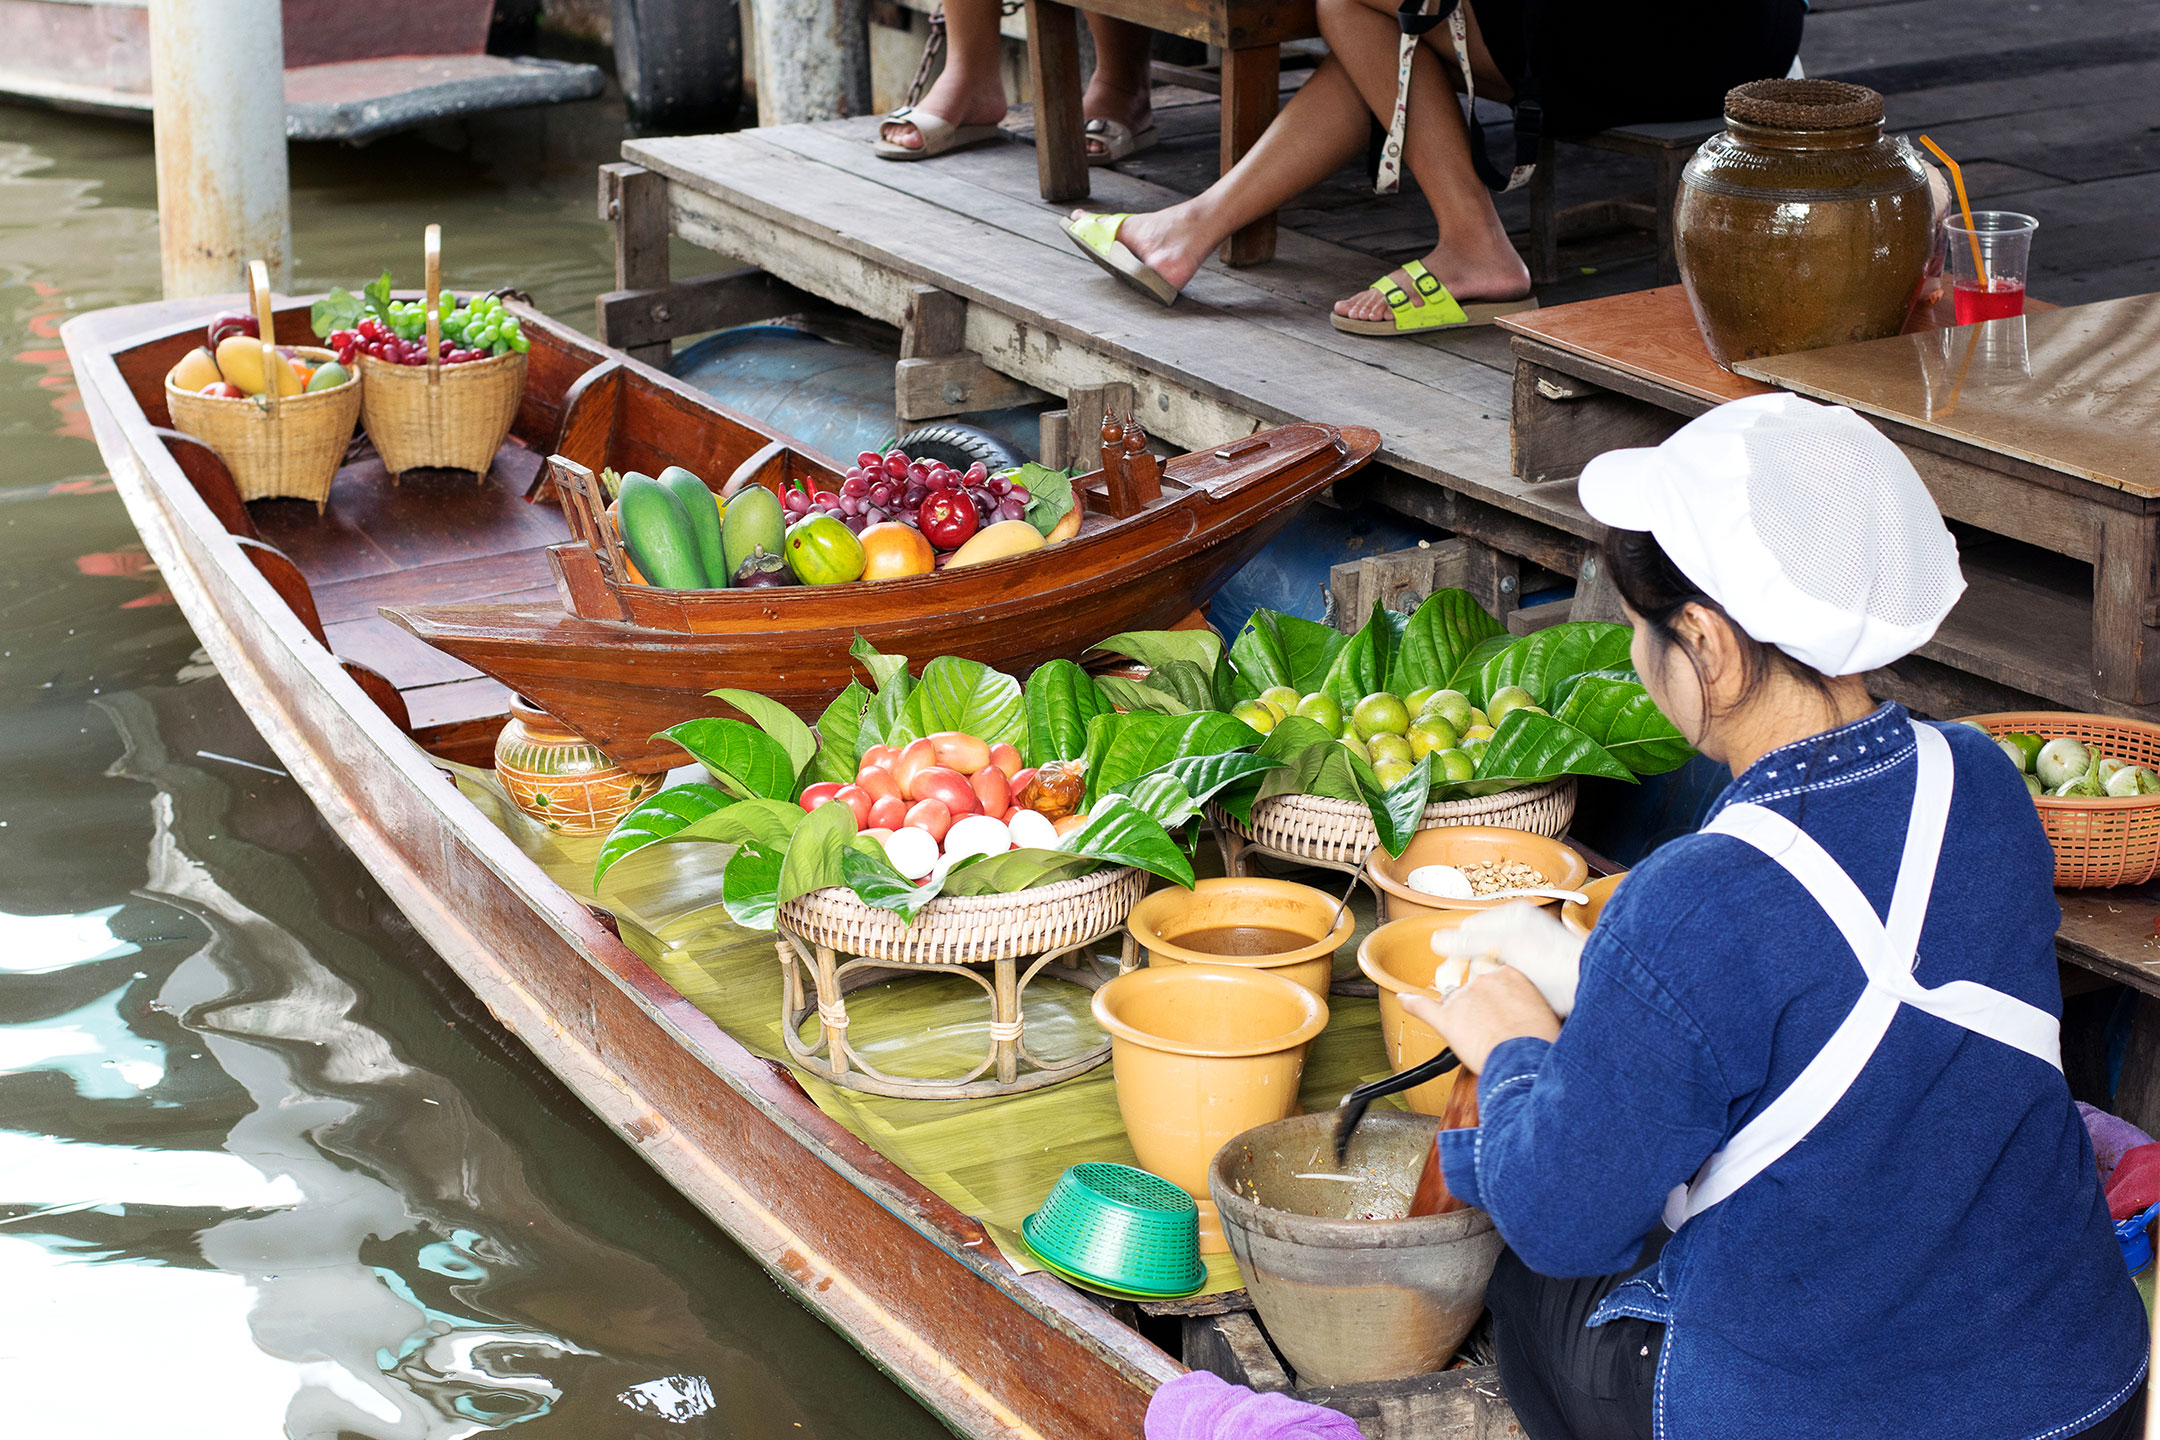 Love the beautiful fruit arrangements on the boats at Taling Chan Floating Market.